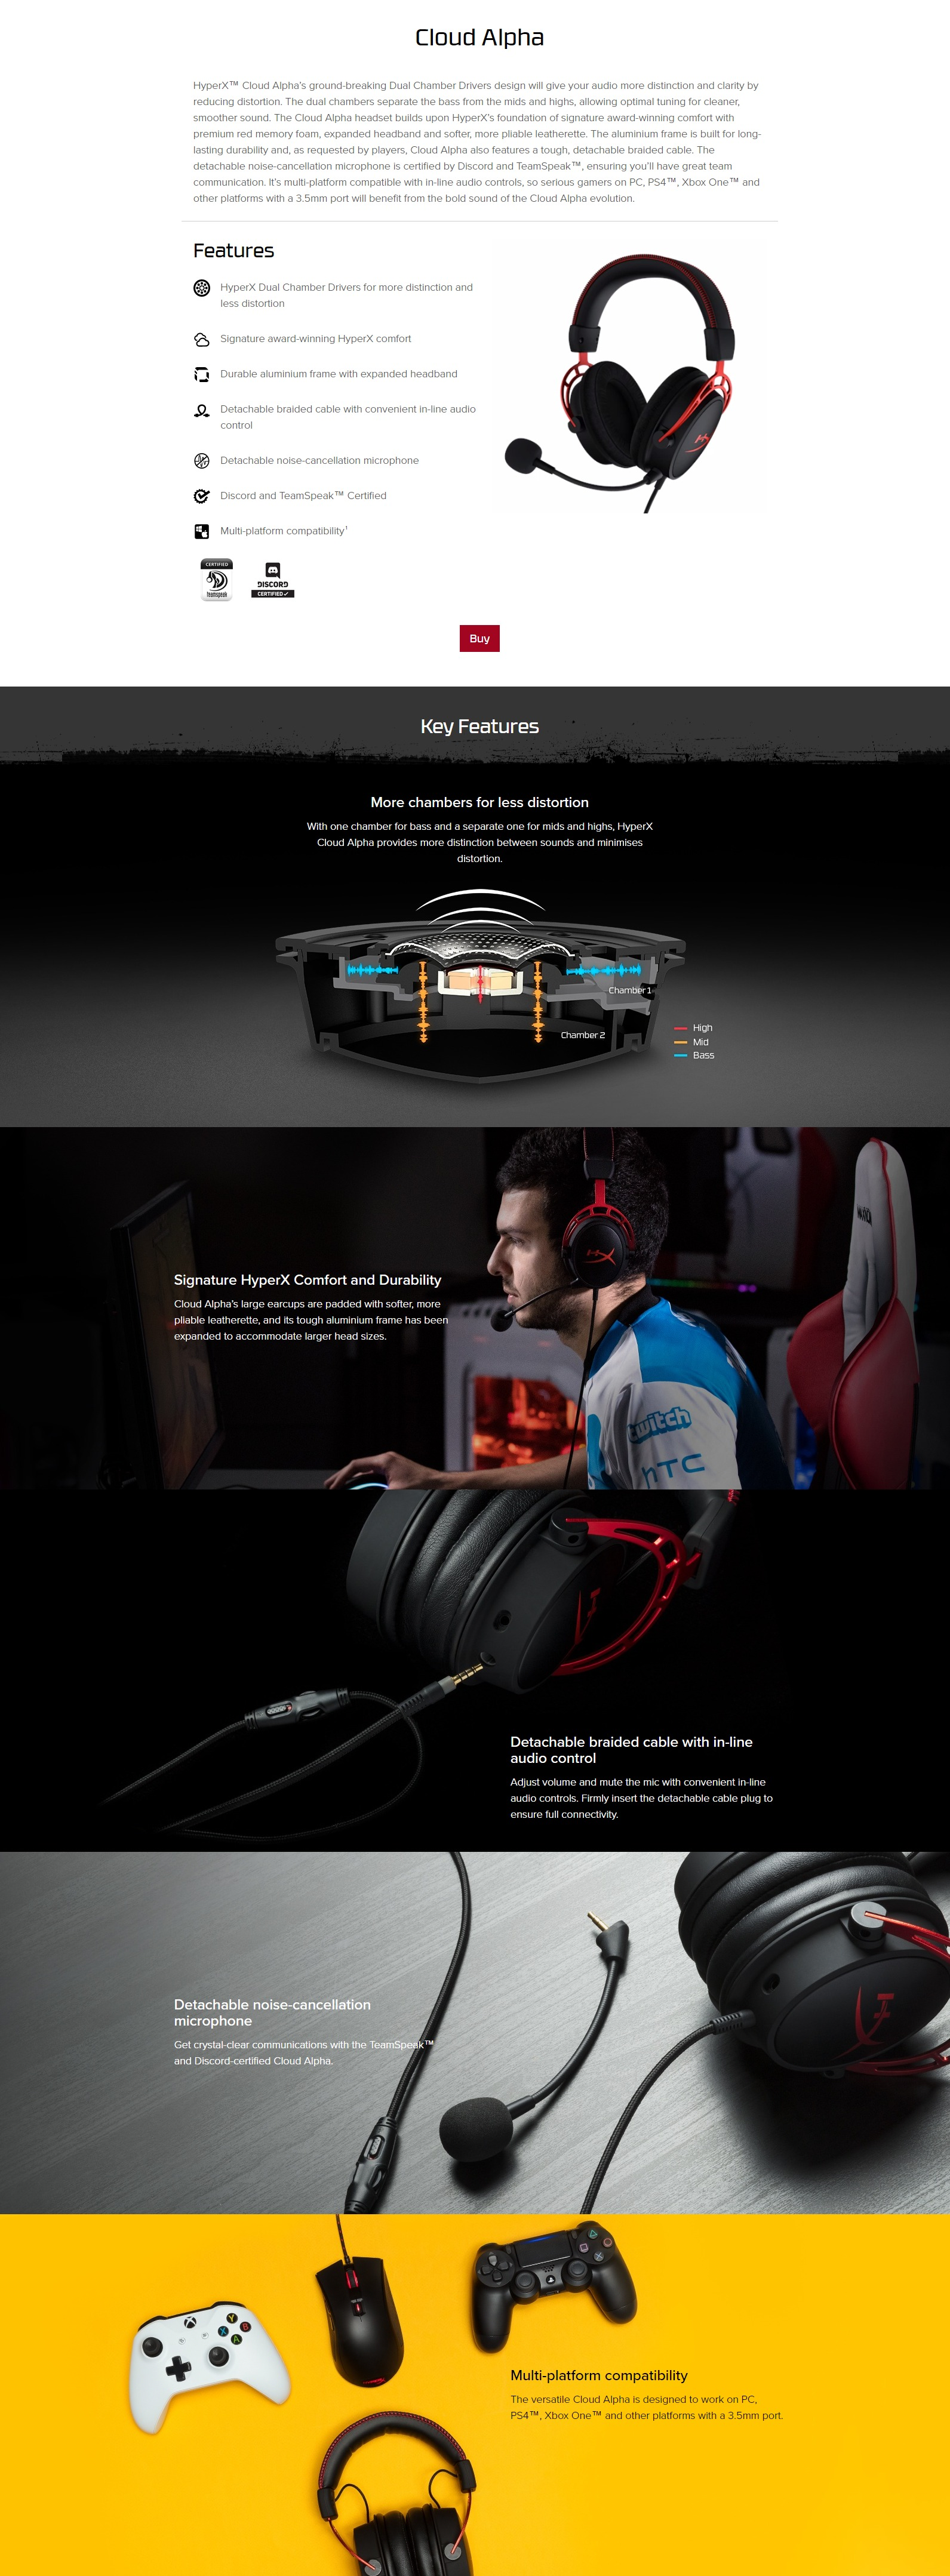 A large marketing image providing additional information about the product Kingston HyperX Cloud Alpha Pro Gaming Headset for PC, PS4 & Xbox One, Nintendo Switch - Additional alt info not provided